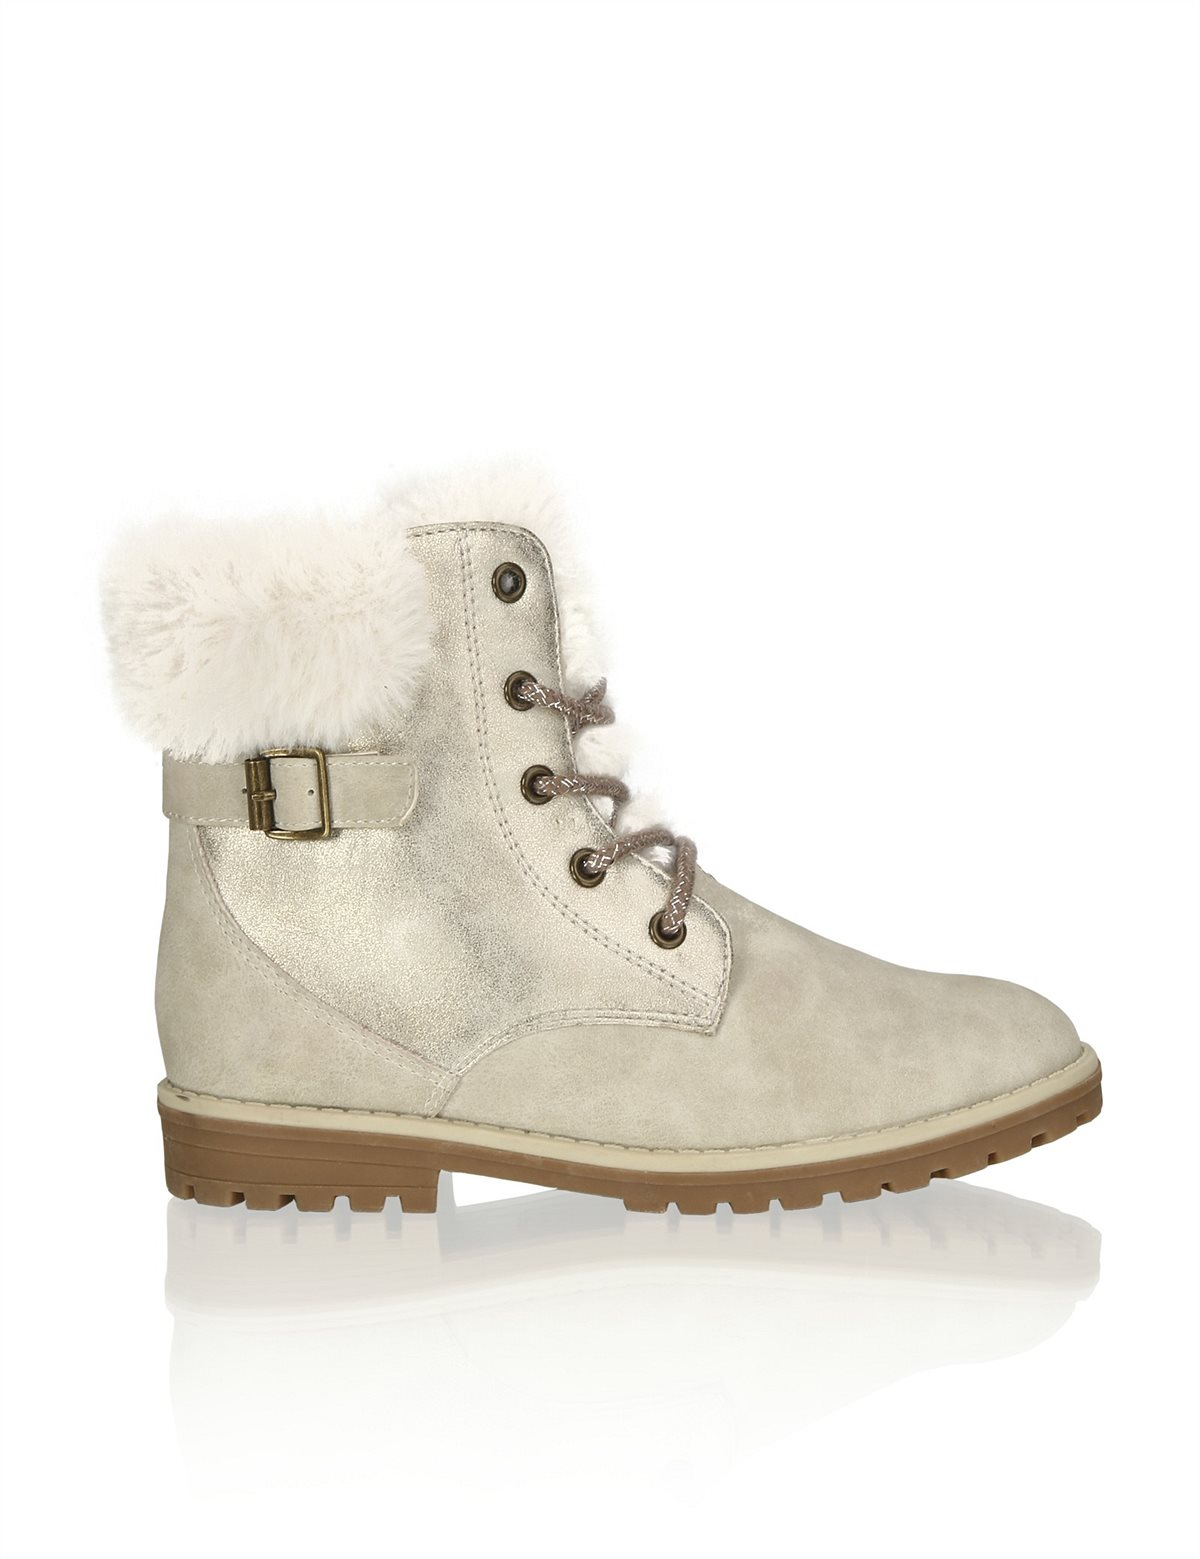 HUMANIC 10 Kids Funky Girls Boot ab EUR 39,95 ab Ende August 3623504725